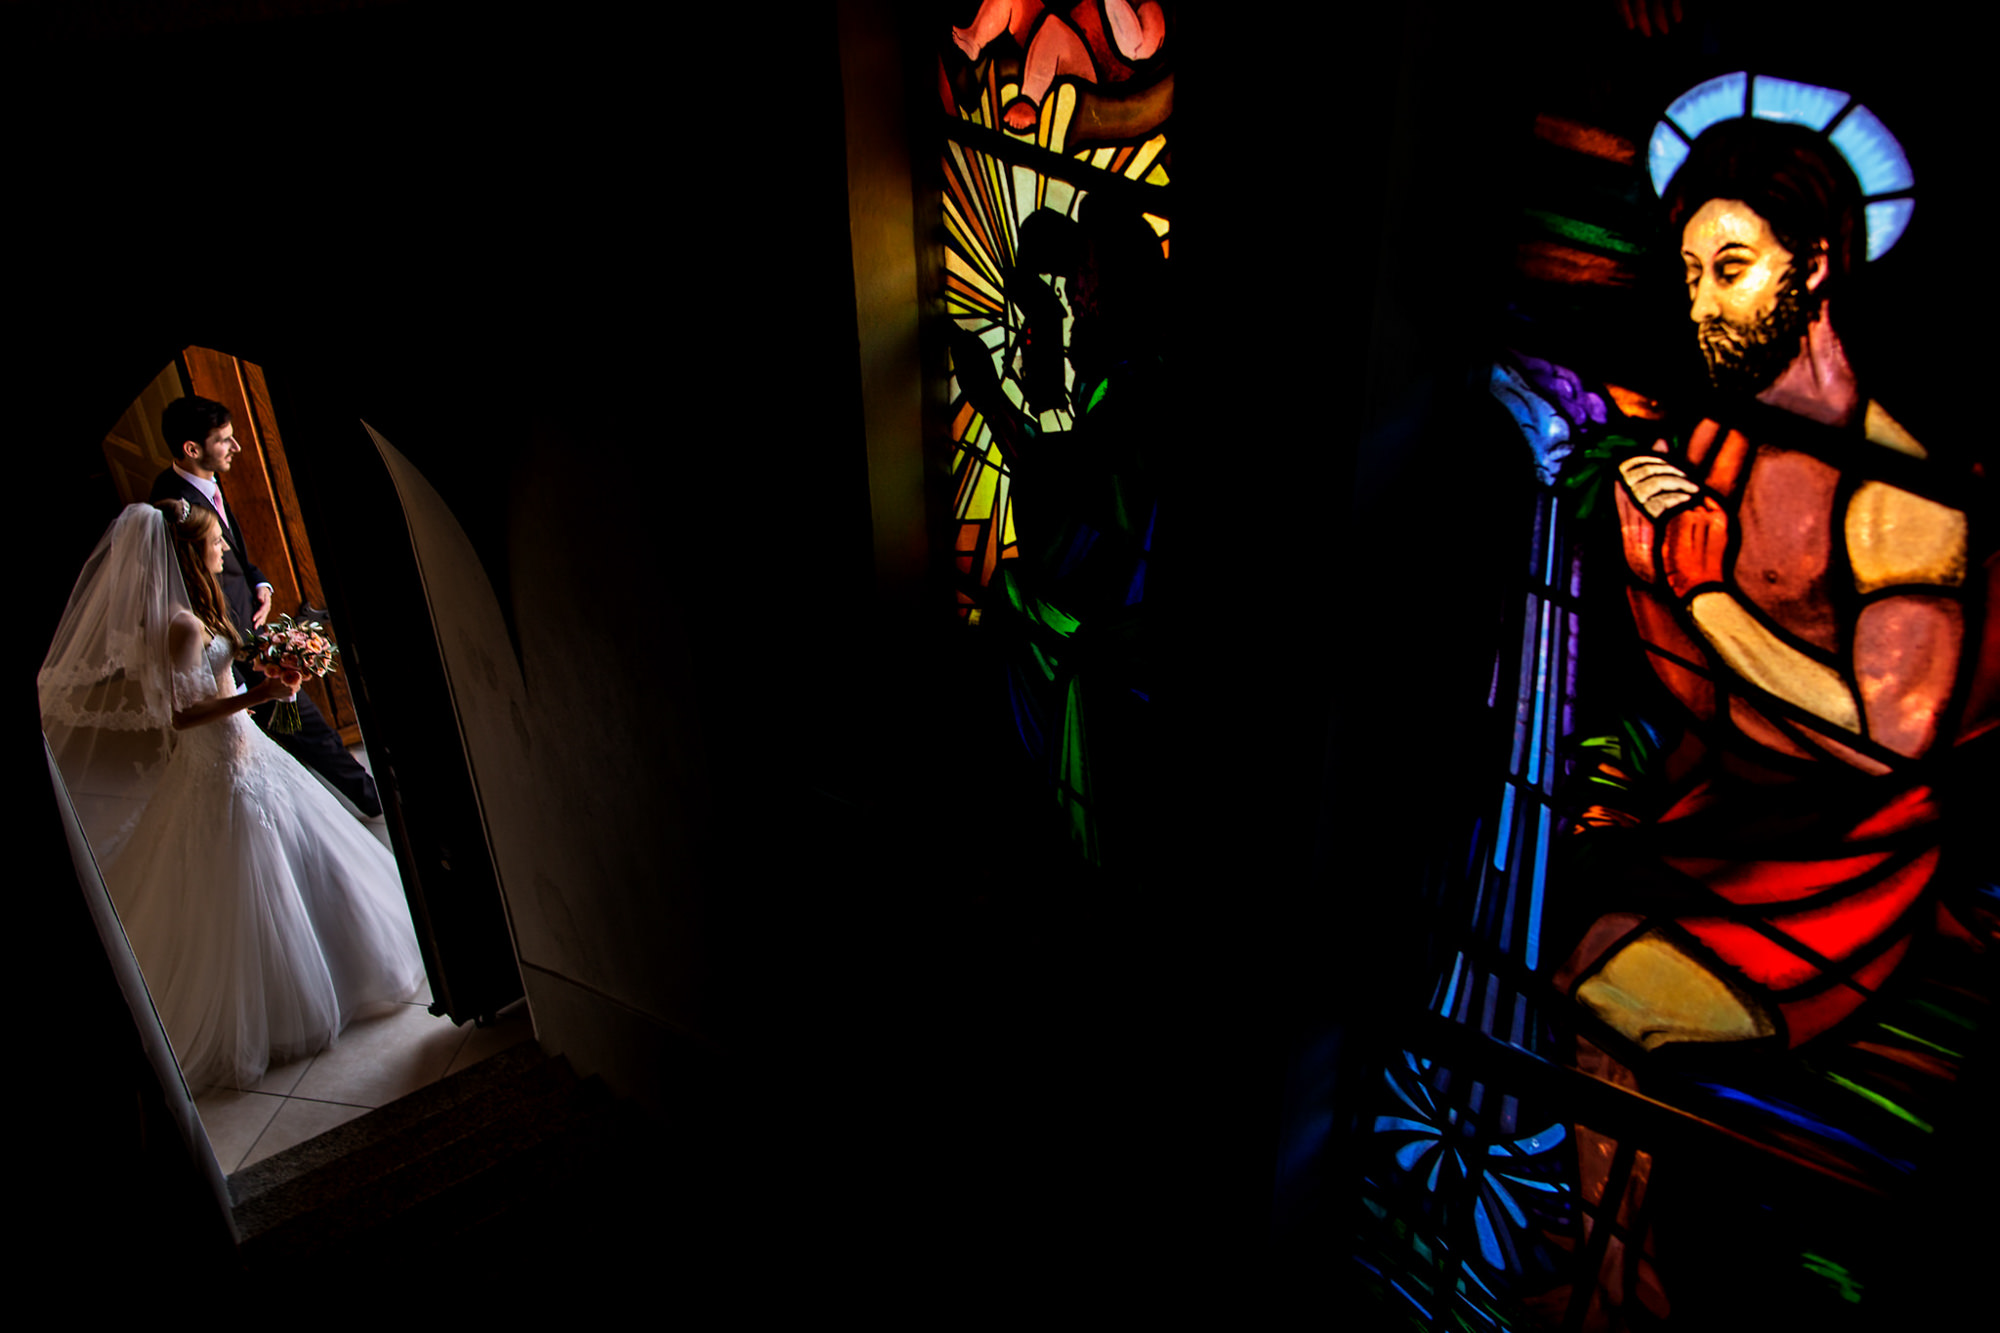 Couple exits church with stained glass window - photo by Two Mann Studios